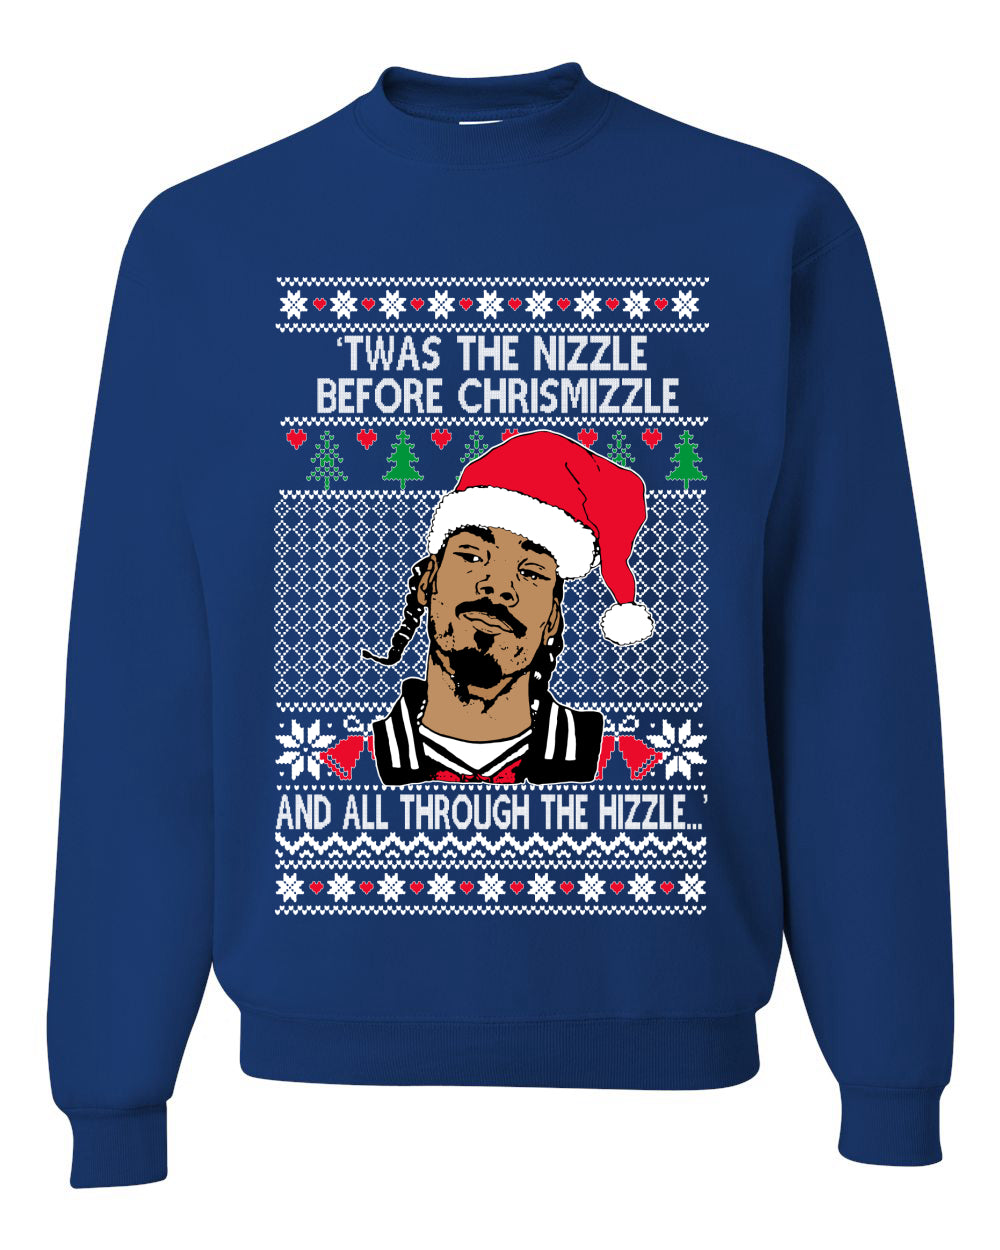 Snoop Twas The Nizzle Before Chrismizzle Christmas Unisex Crewneck Graphic Sweatshirt